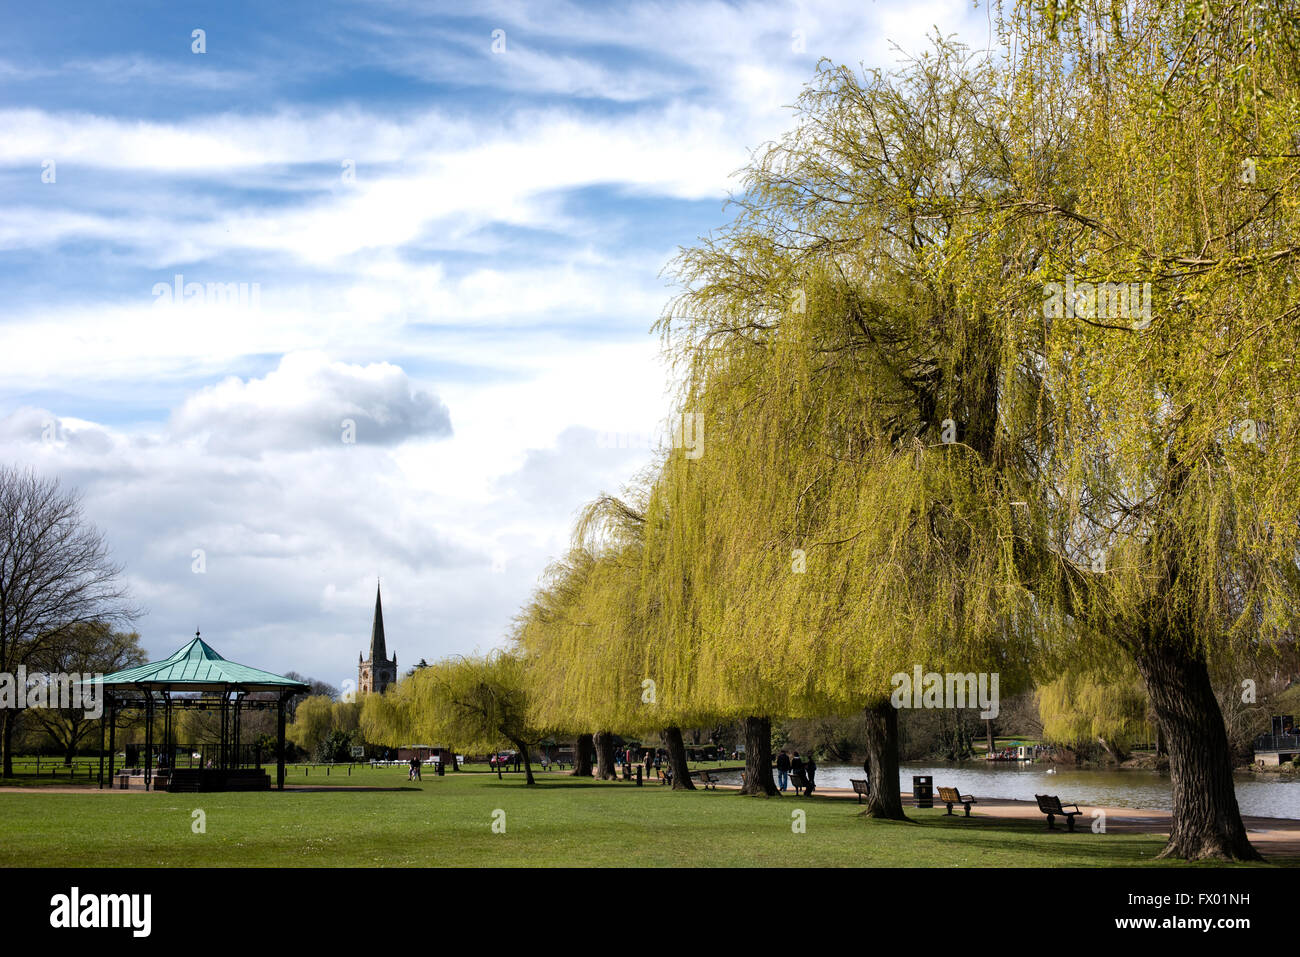 Bandstand and willow trees along the River Avon opposite the Swan Theatre at Shakespeare's Stratford-upon-Avon - Stock Image